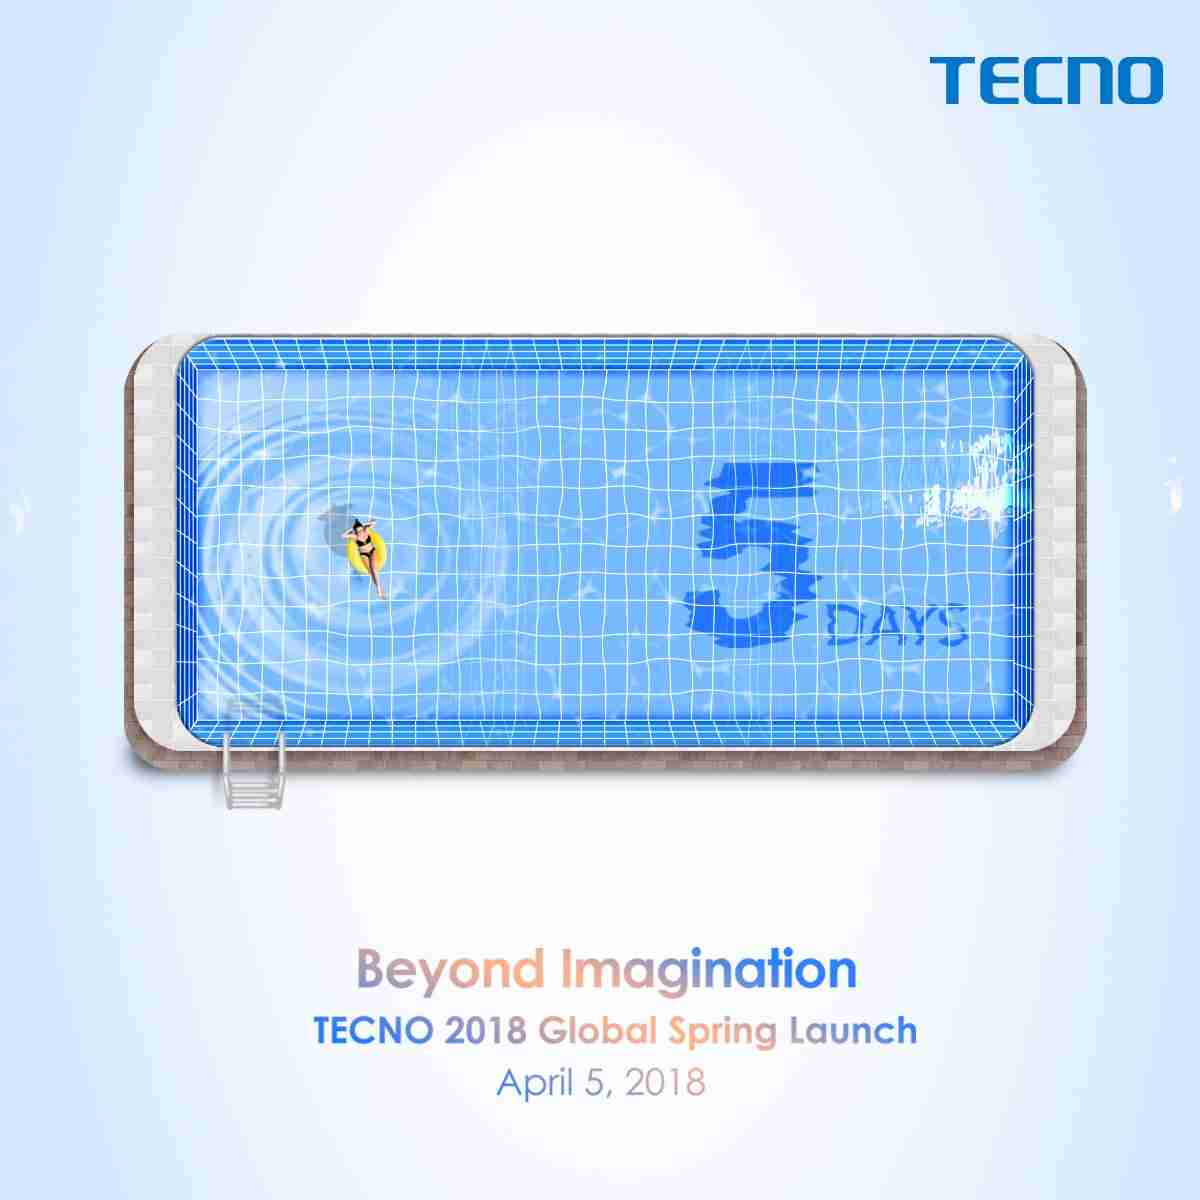 Tecno Camon X and X Pro Full Phone Specifications, Features, Reviews, Unboxing and Price